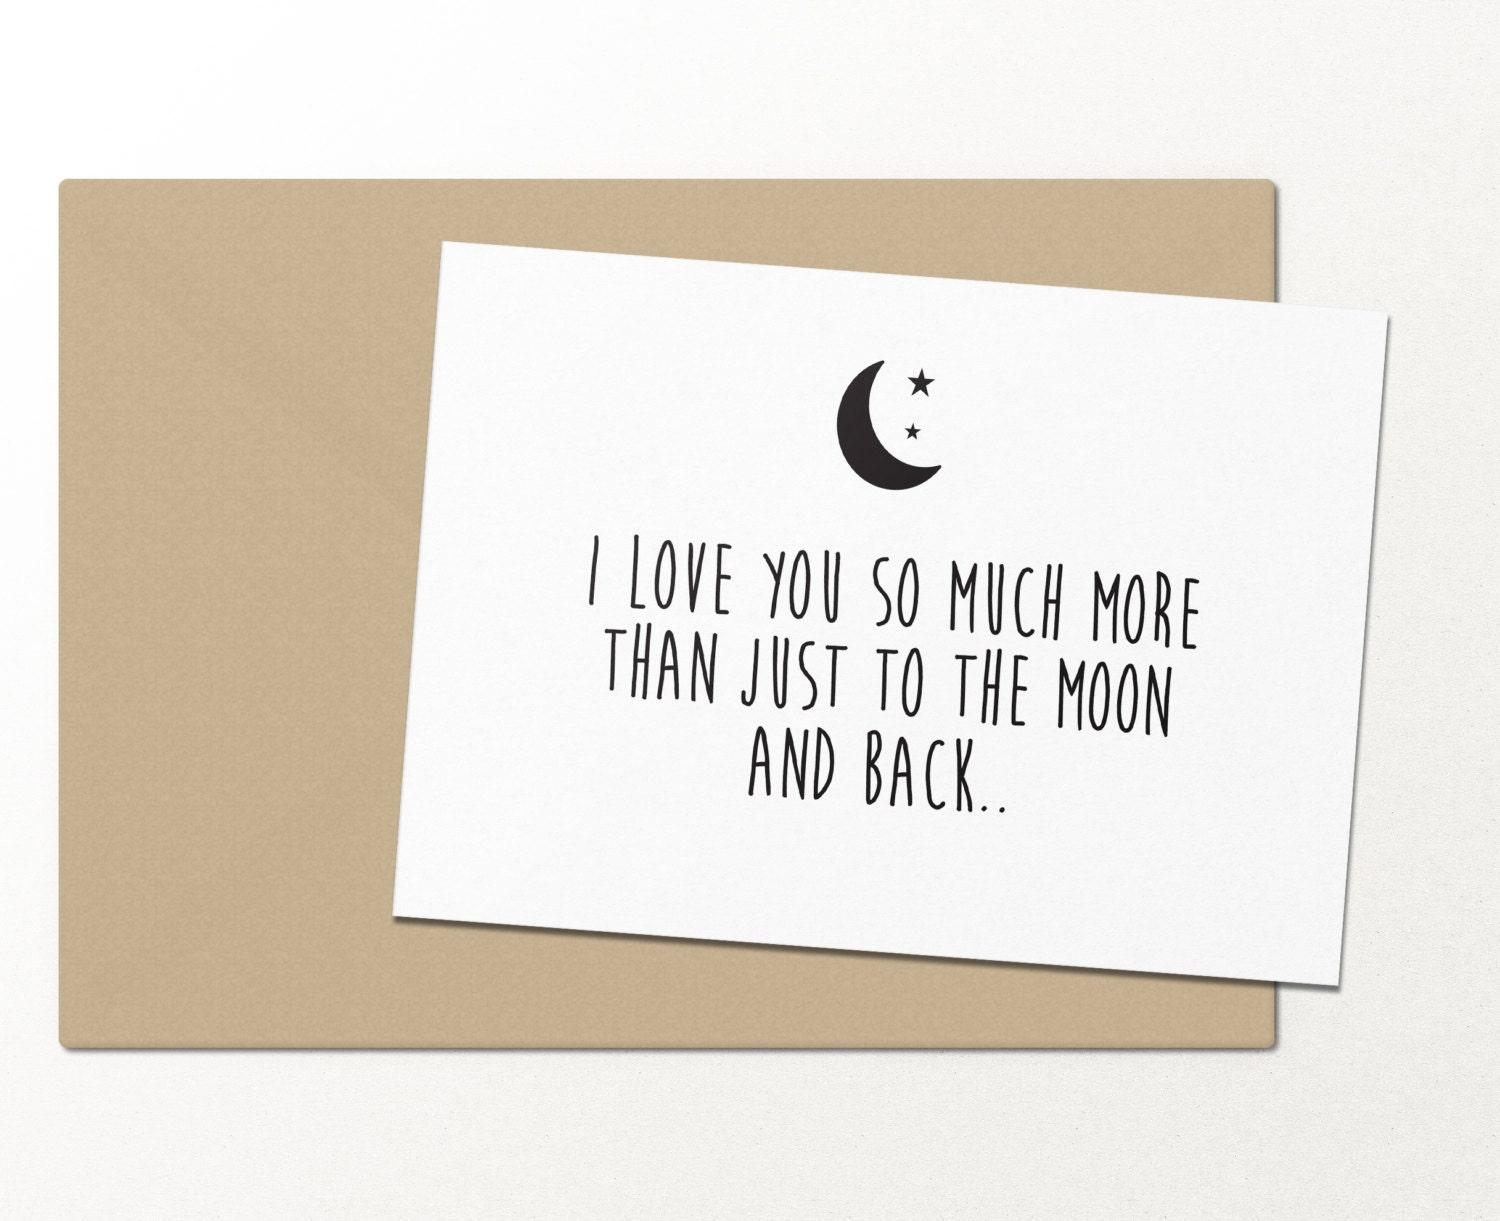 I love you so much more than just to the moon and back zoom m4hsunfo Images